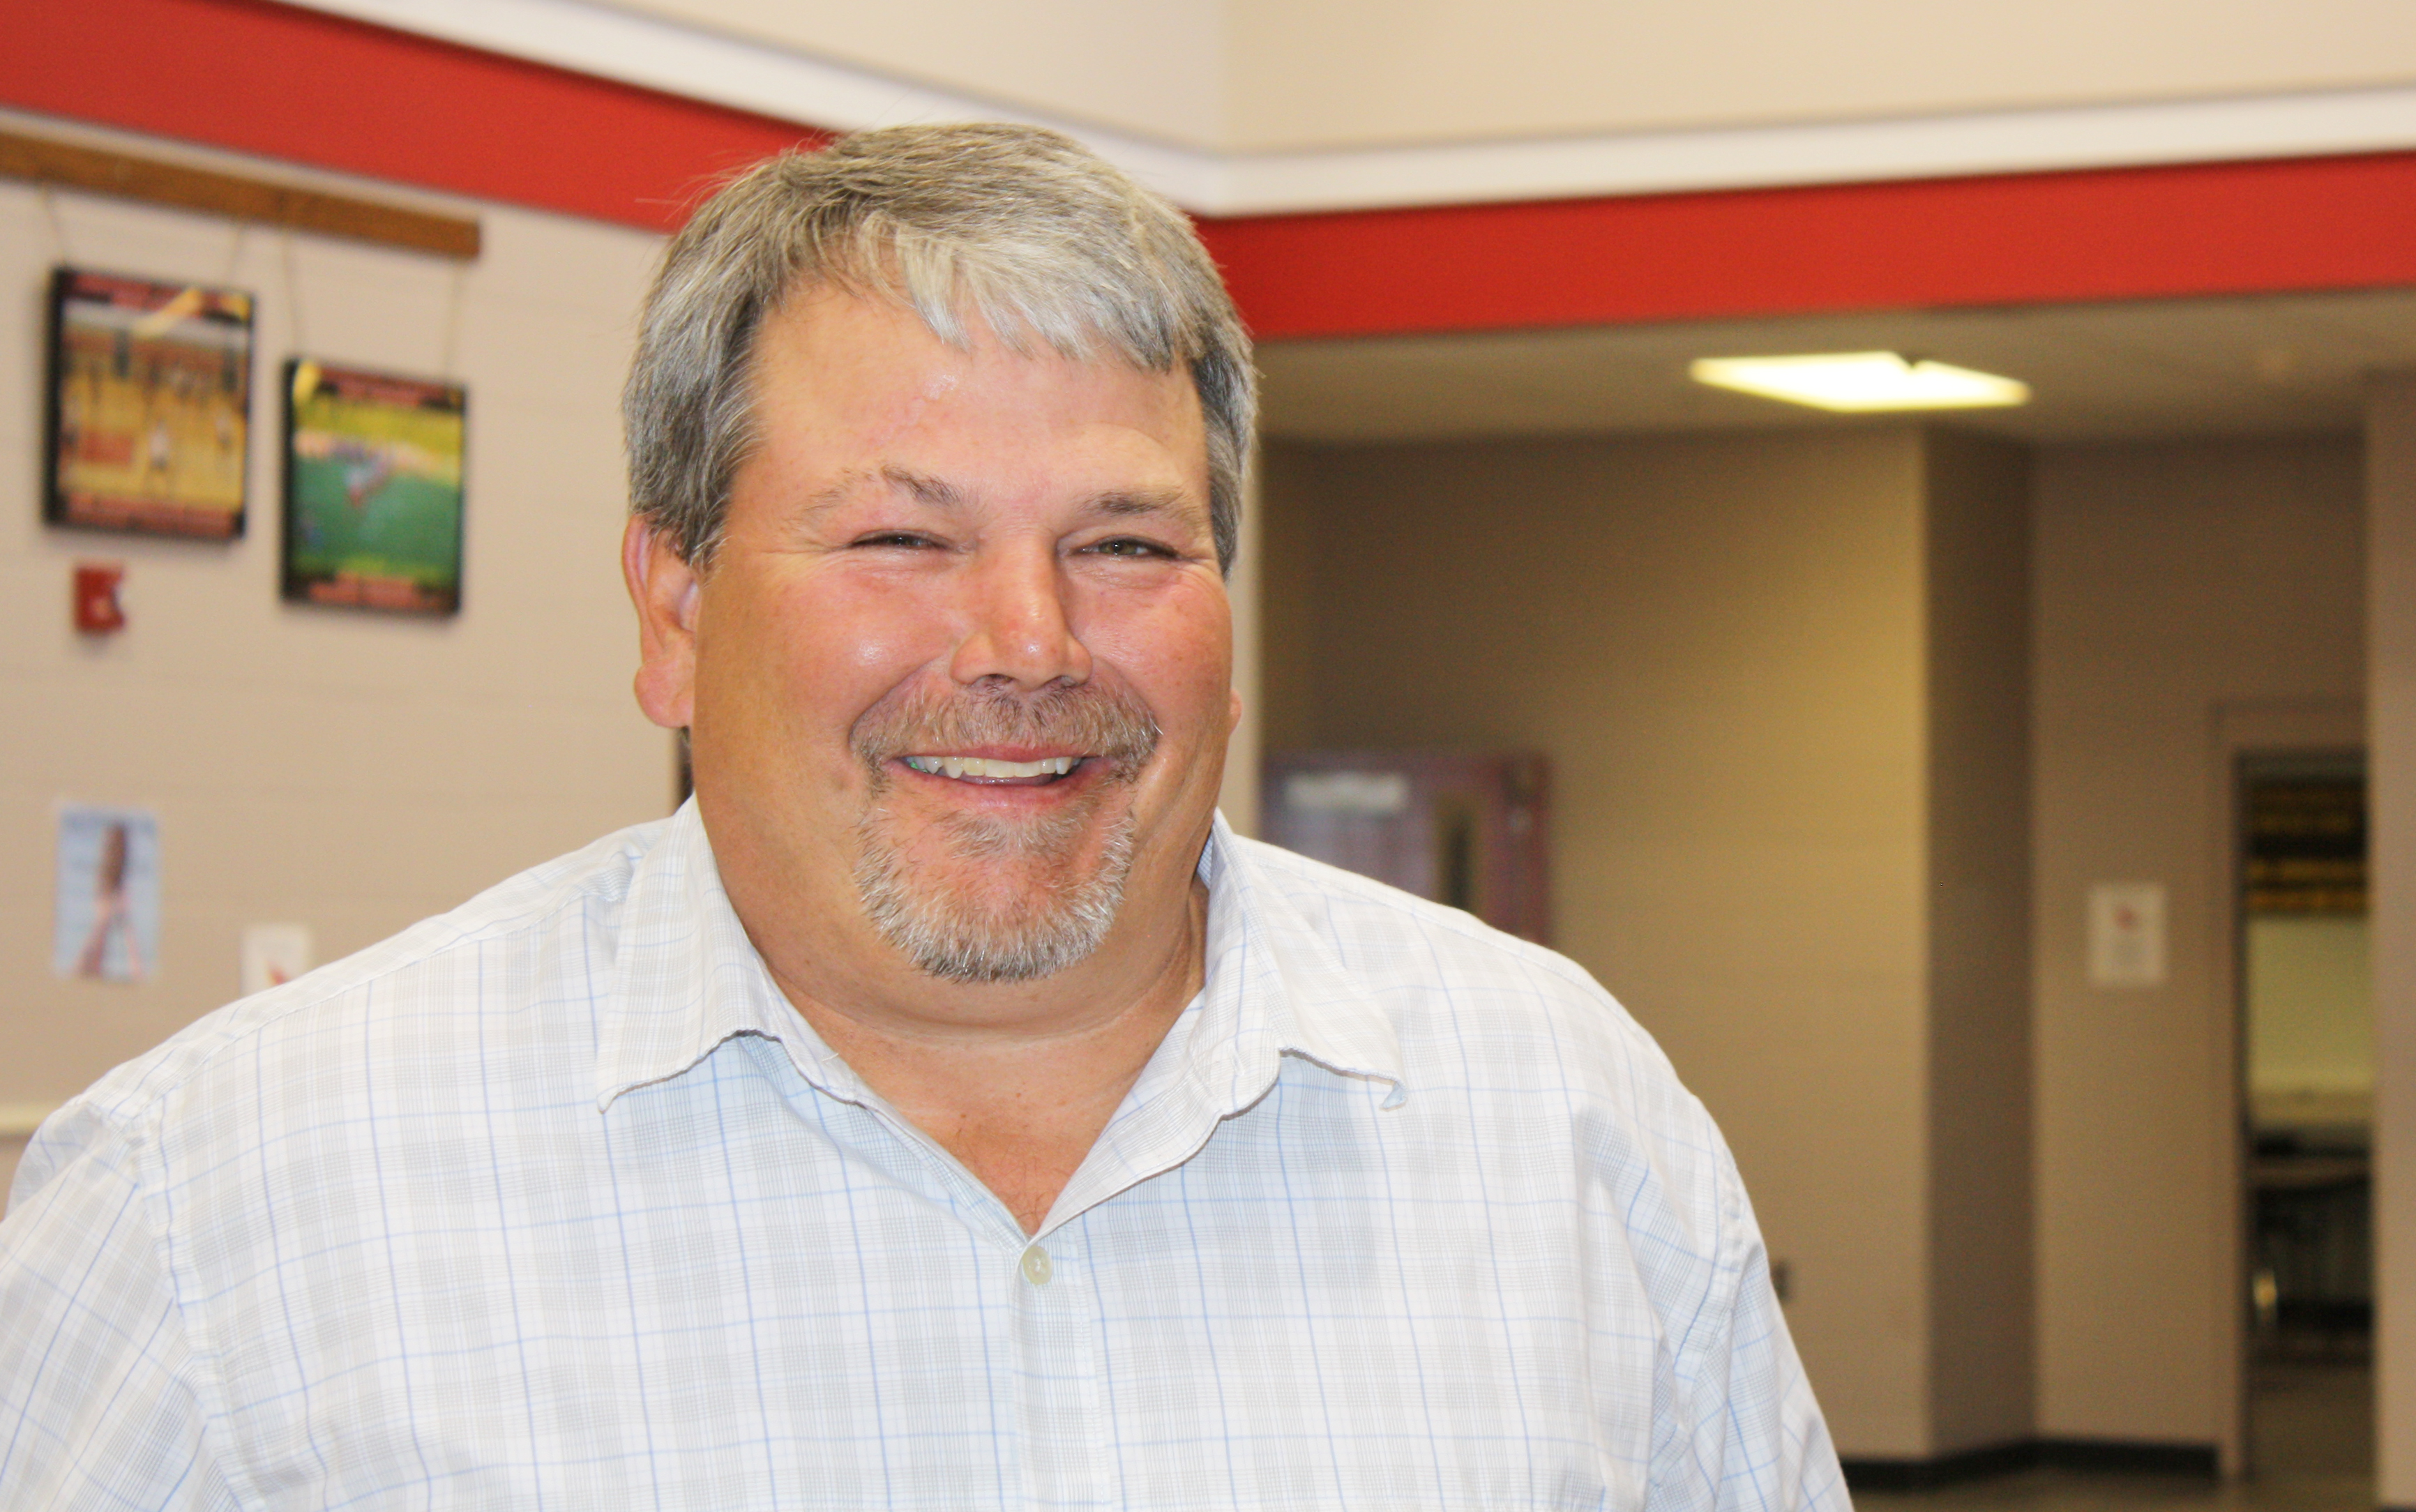 Superintendent Chris Lund says the Arlington School District has had to become creative in how it handles declining enrollment.  Photo by Wendy Royston